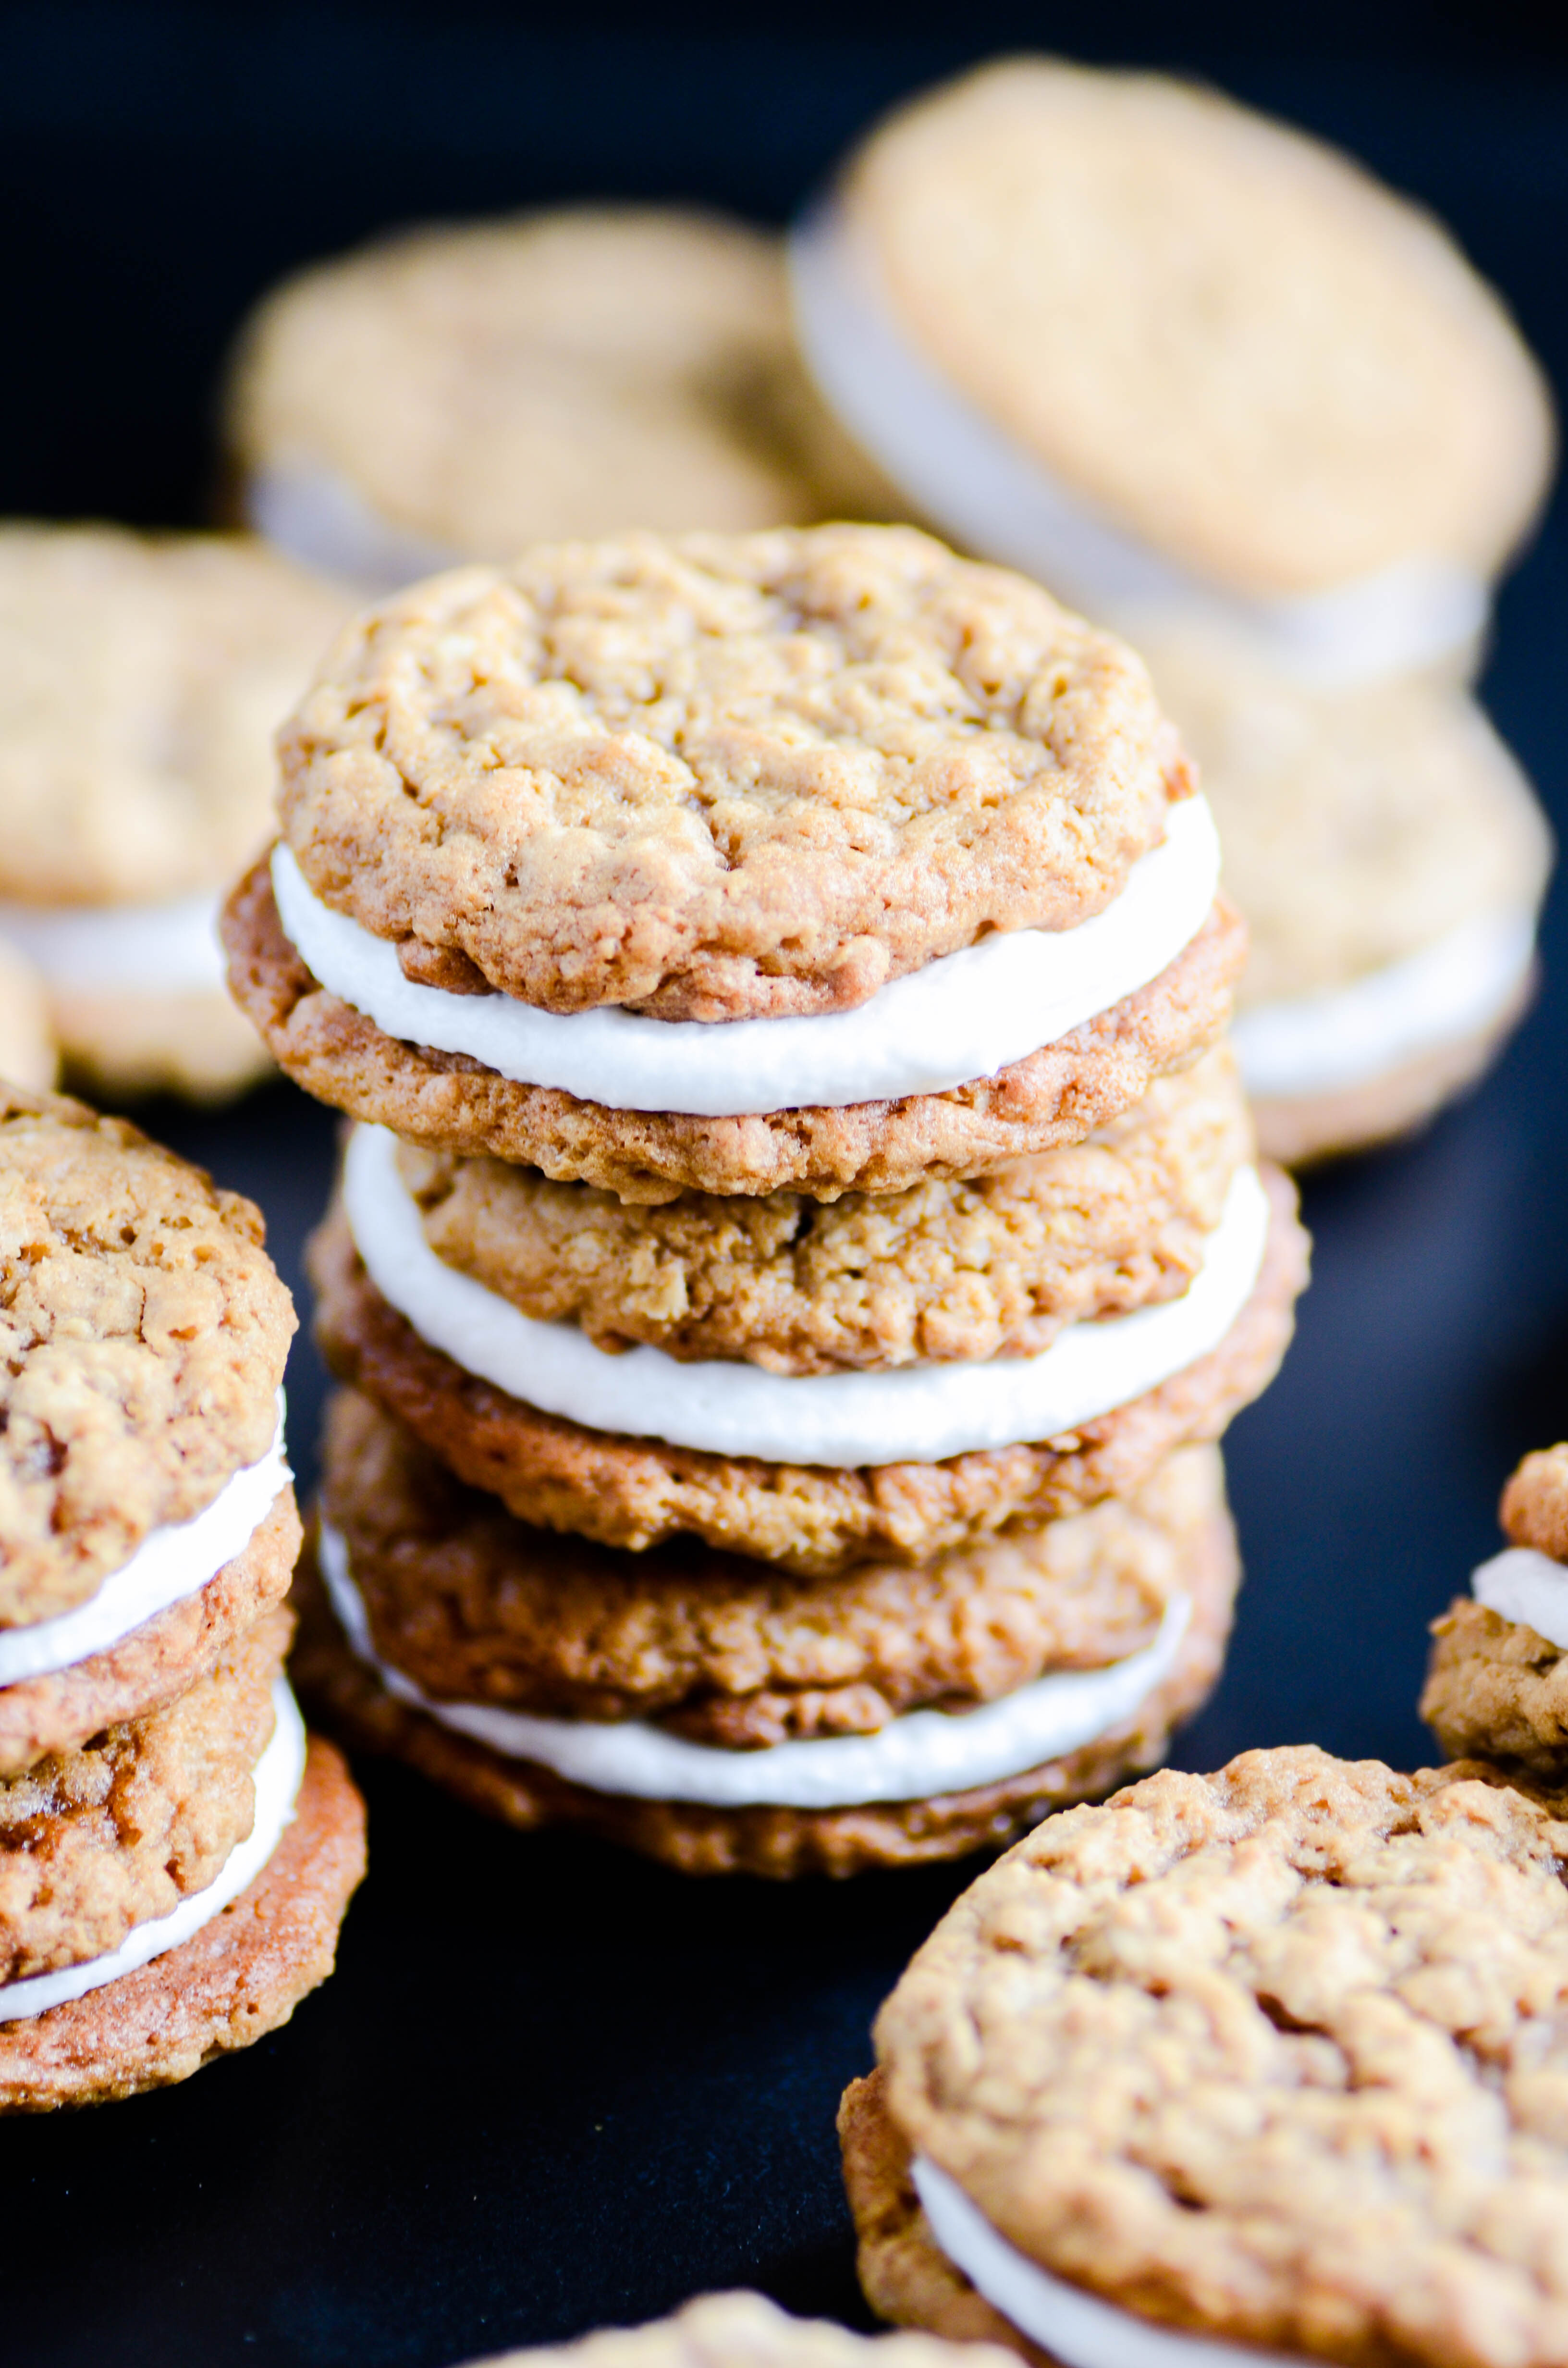 Oatmeal cream pies are so easy to make at home and SO GOOD!